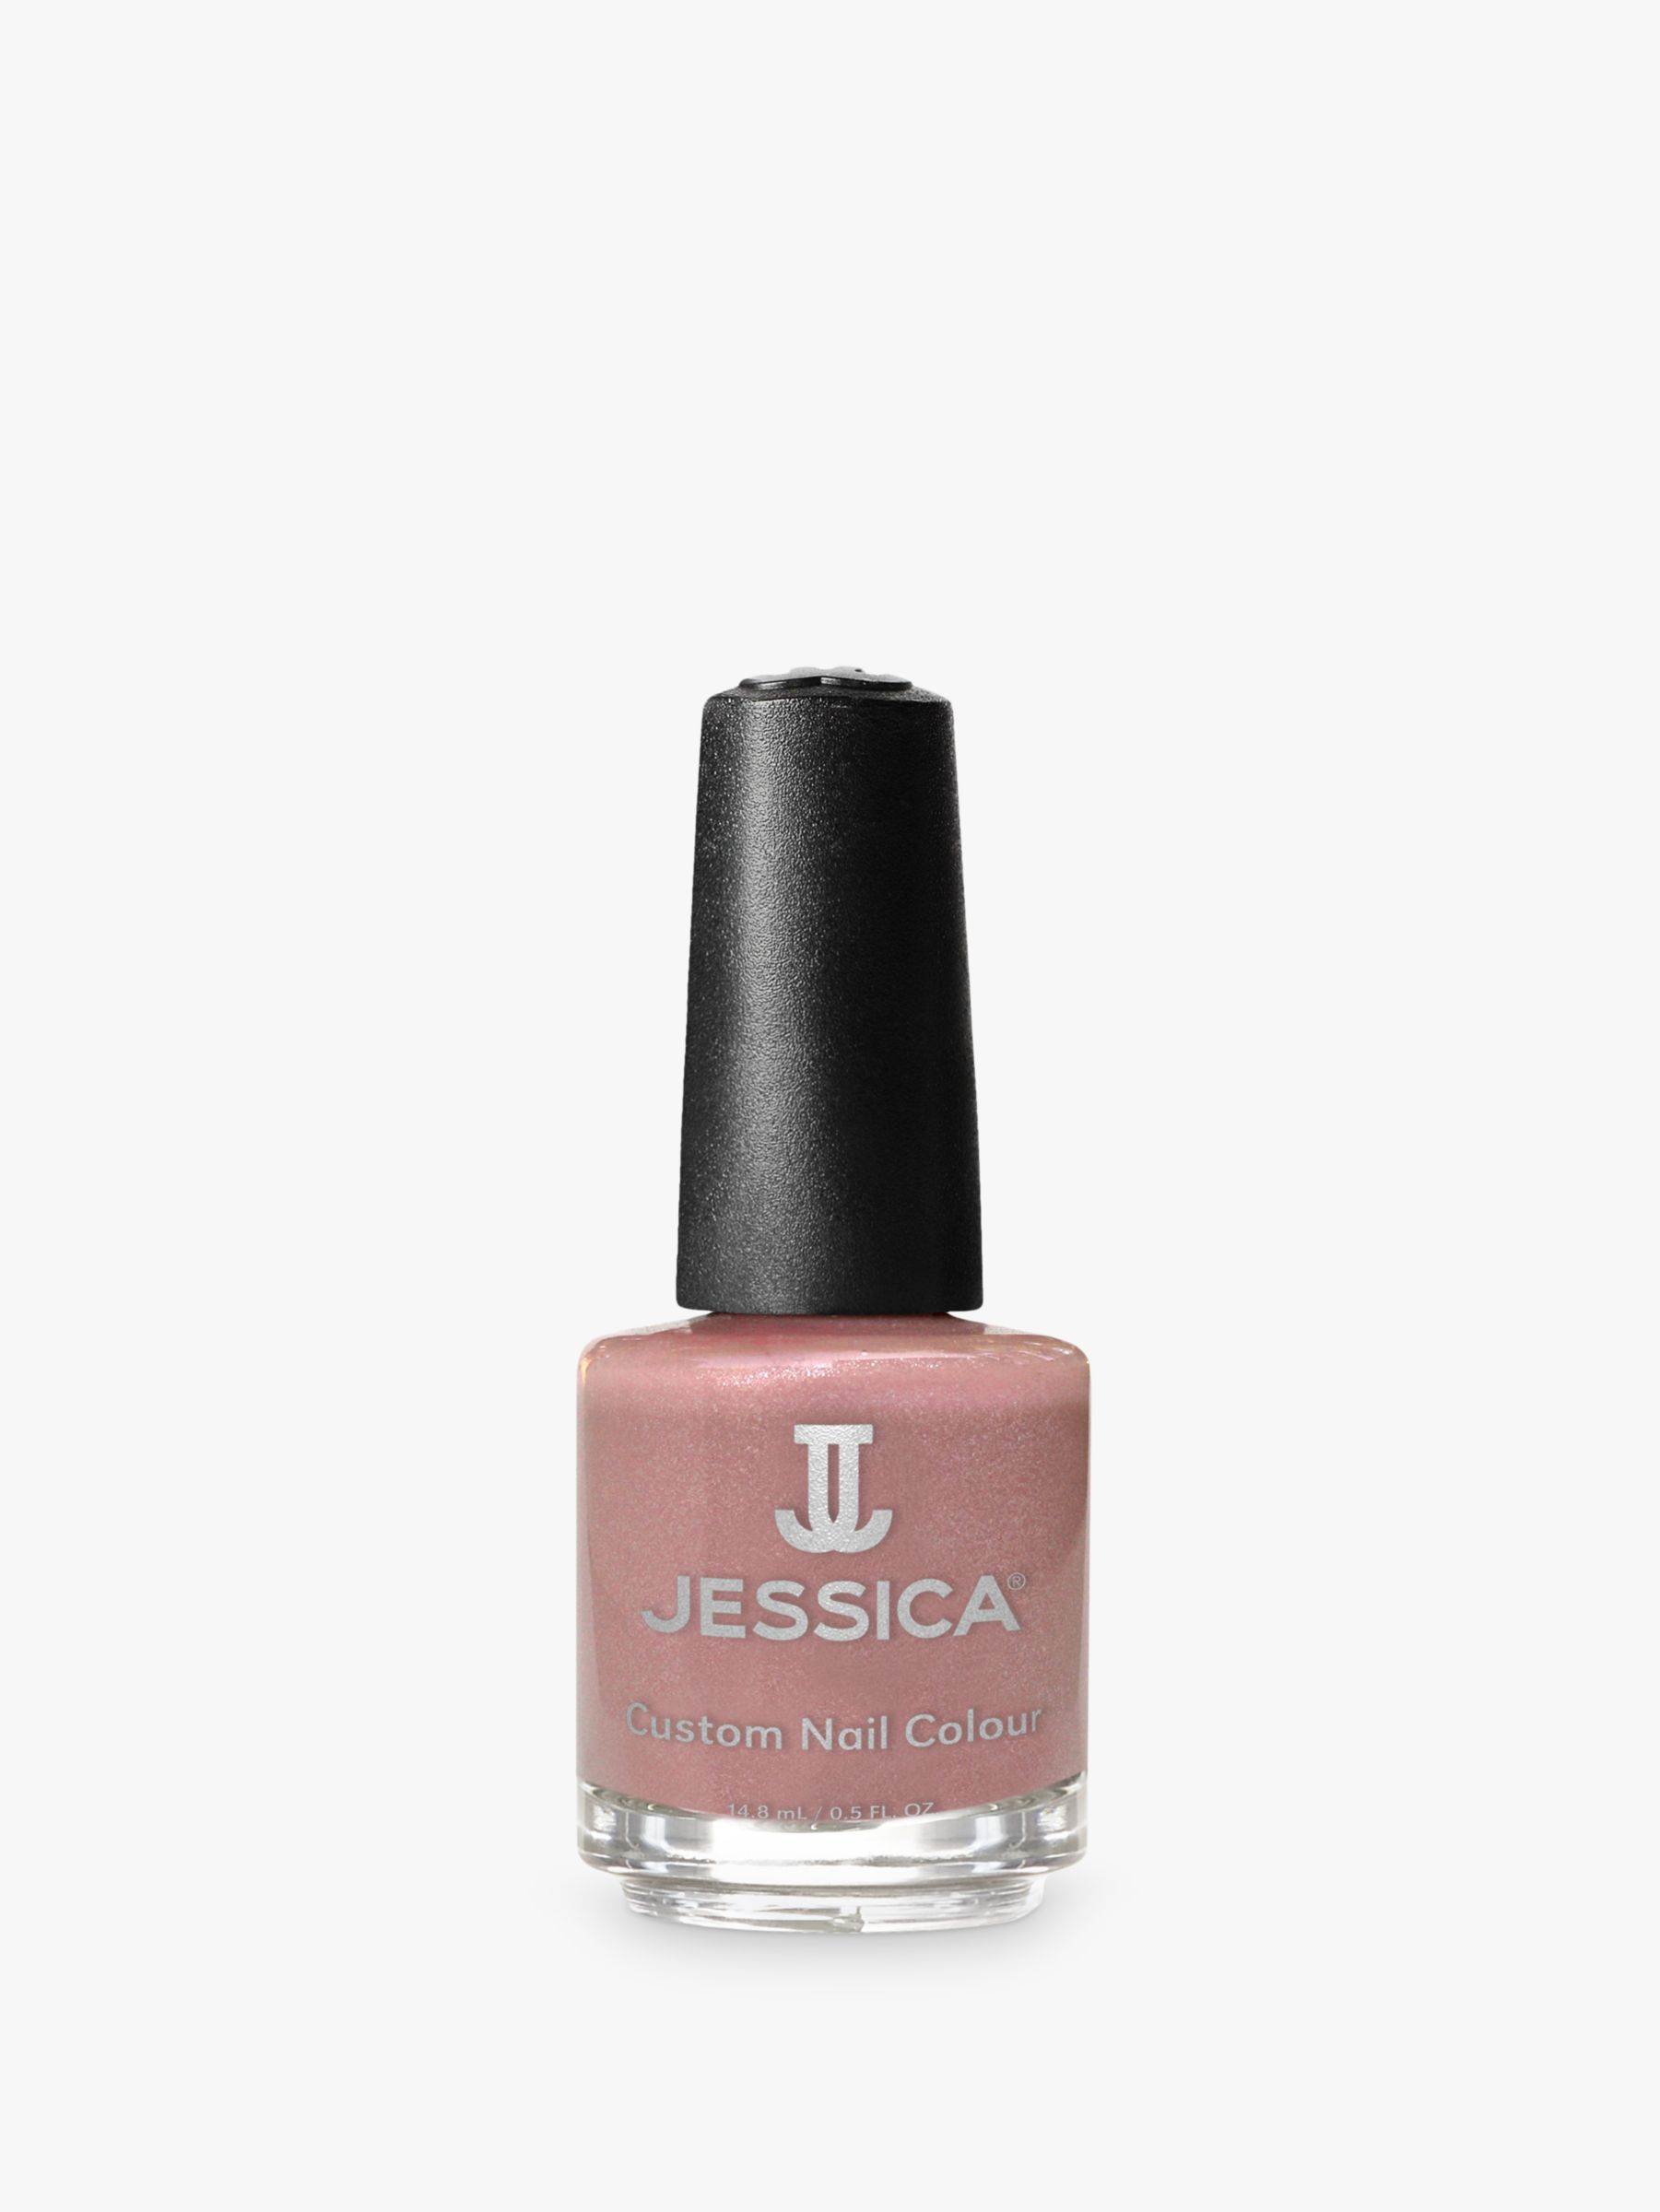 Jessica Custom Nail Colour - Pinks at John Lewis & Partners